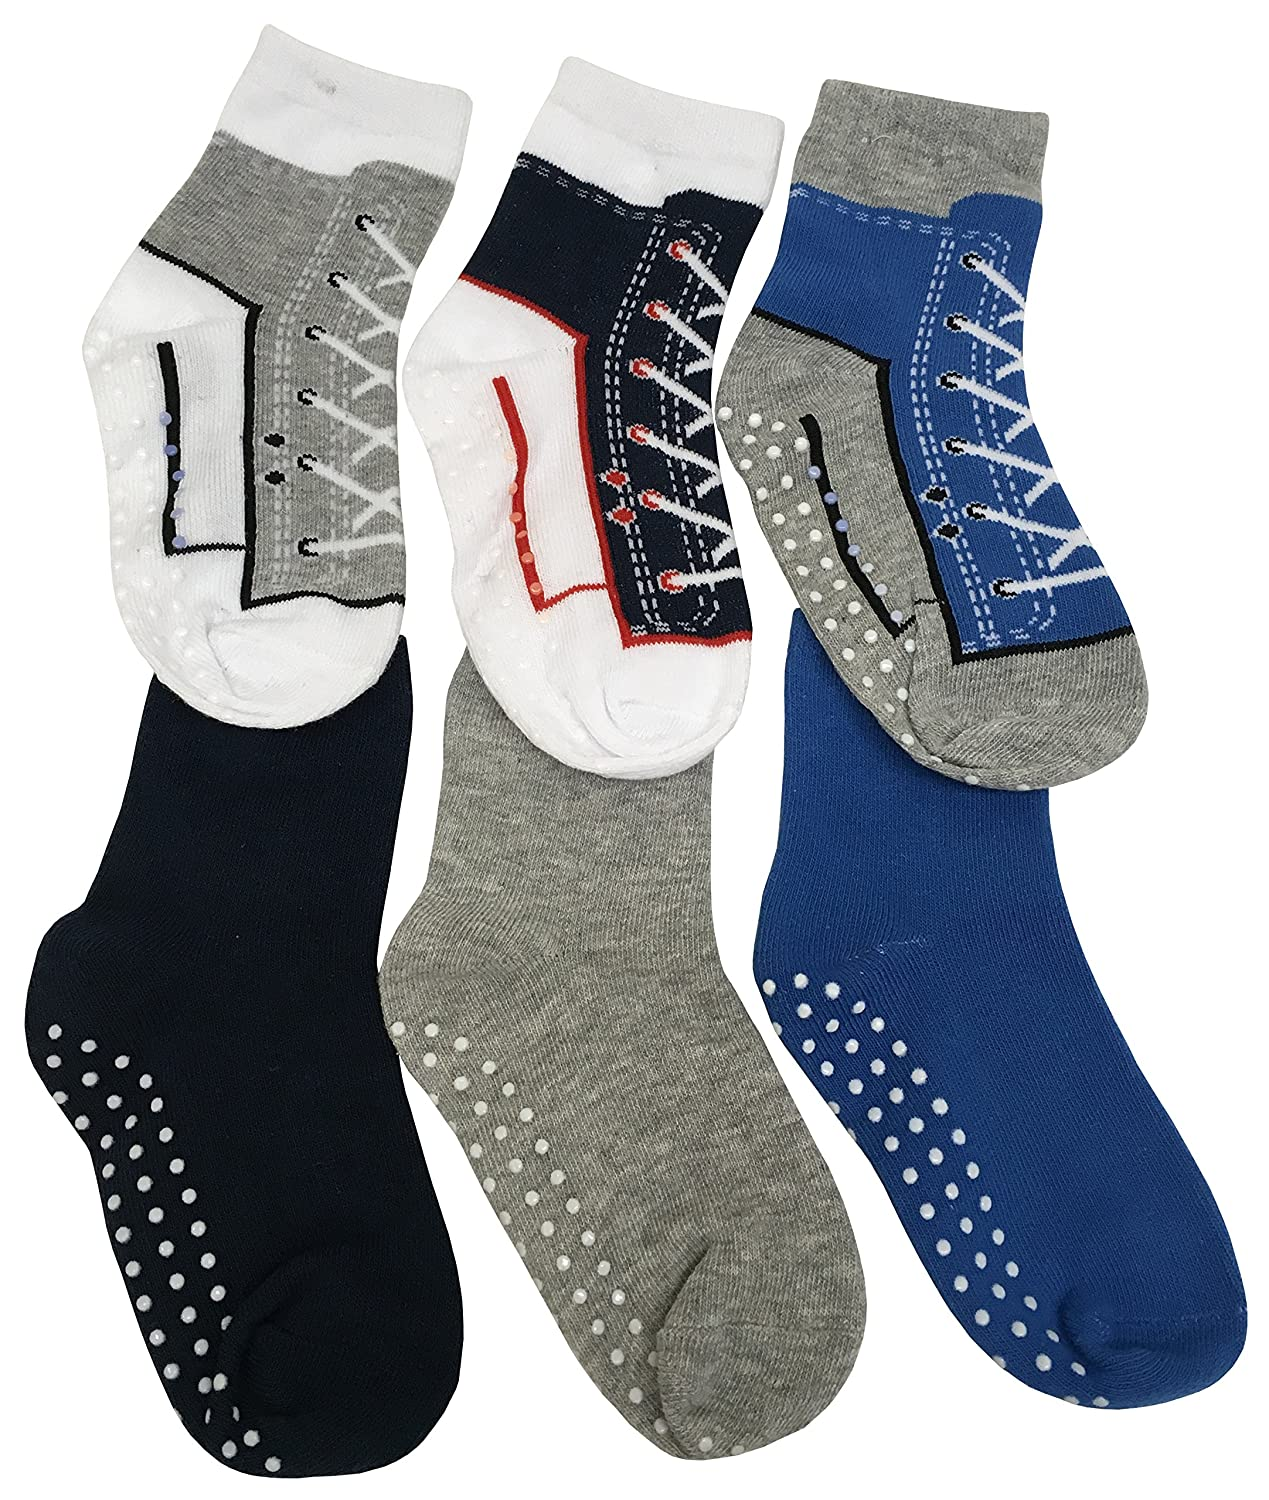 N'Ice Caps Boys and Baby Cotton/Spandex Casual Crew Gripper Socks - 6 Pair Pack